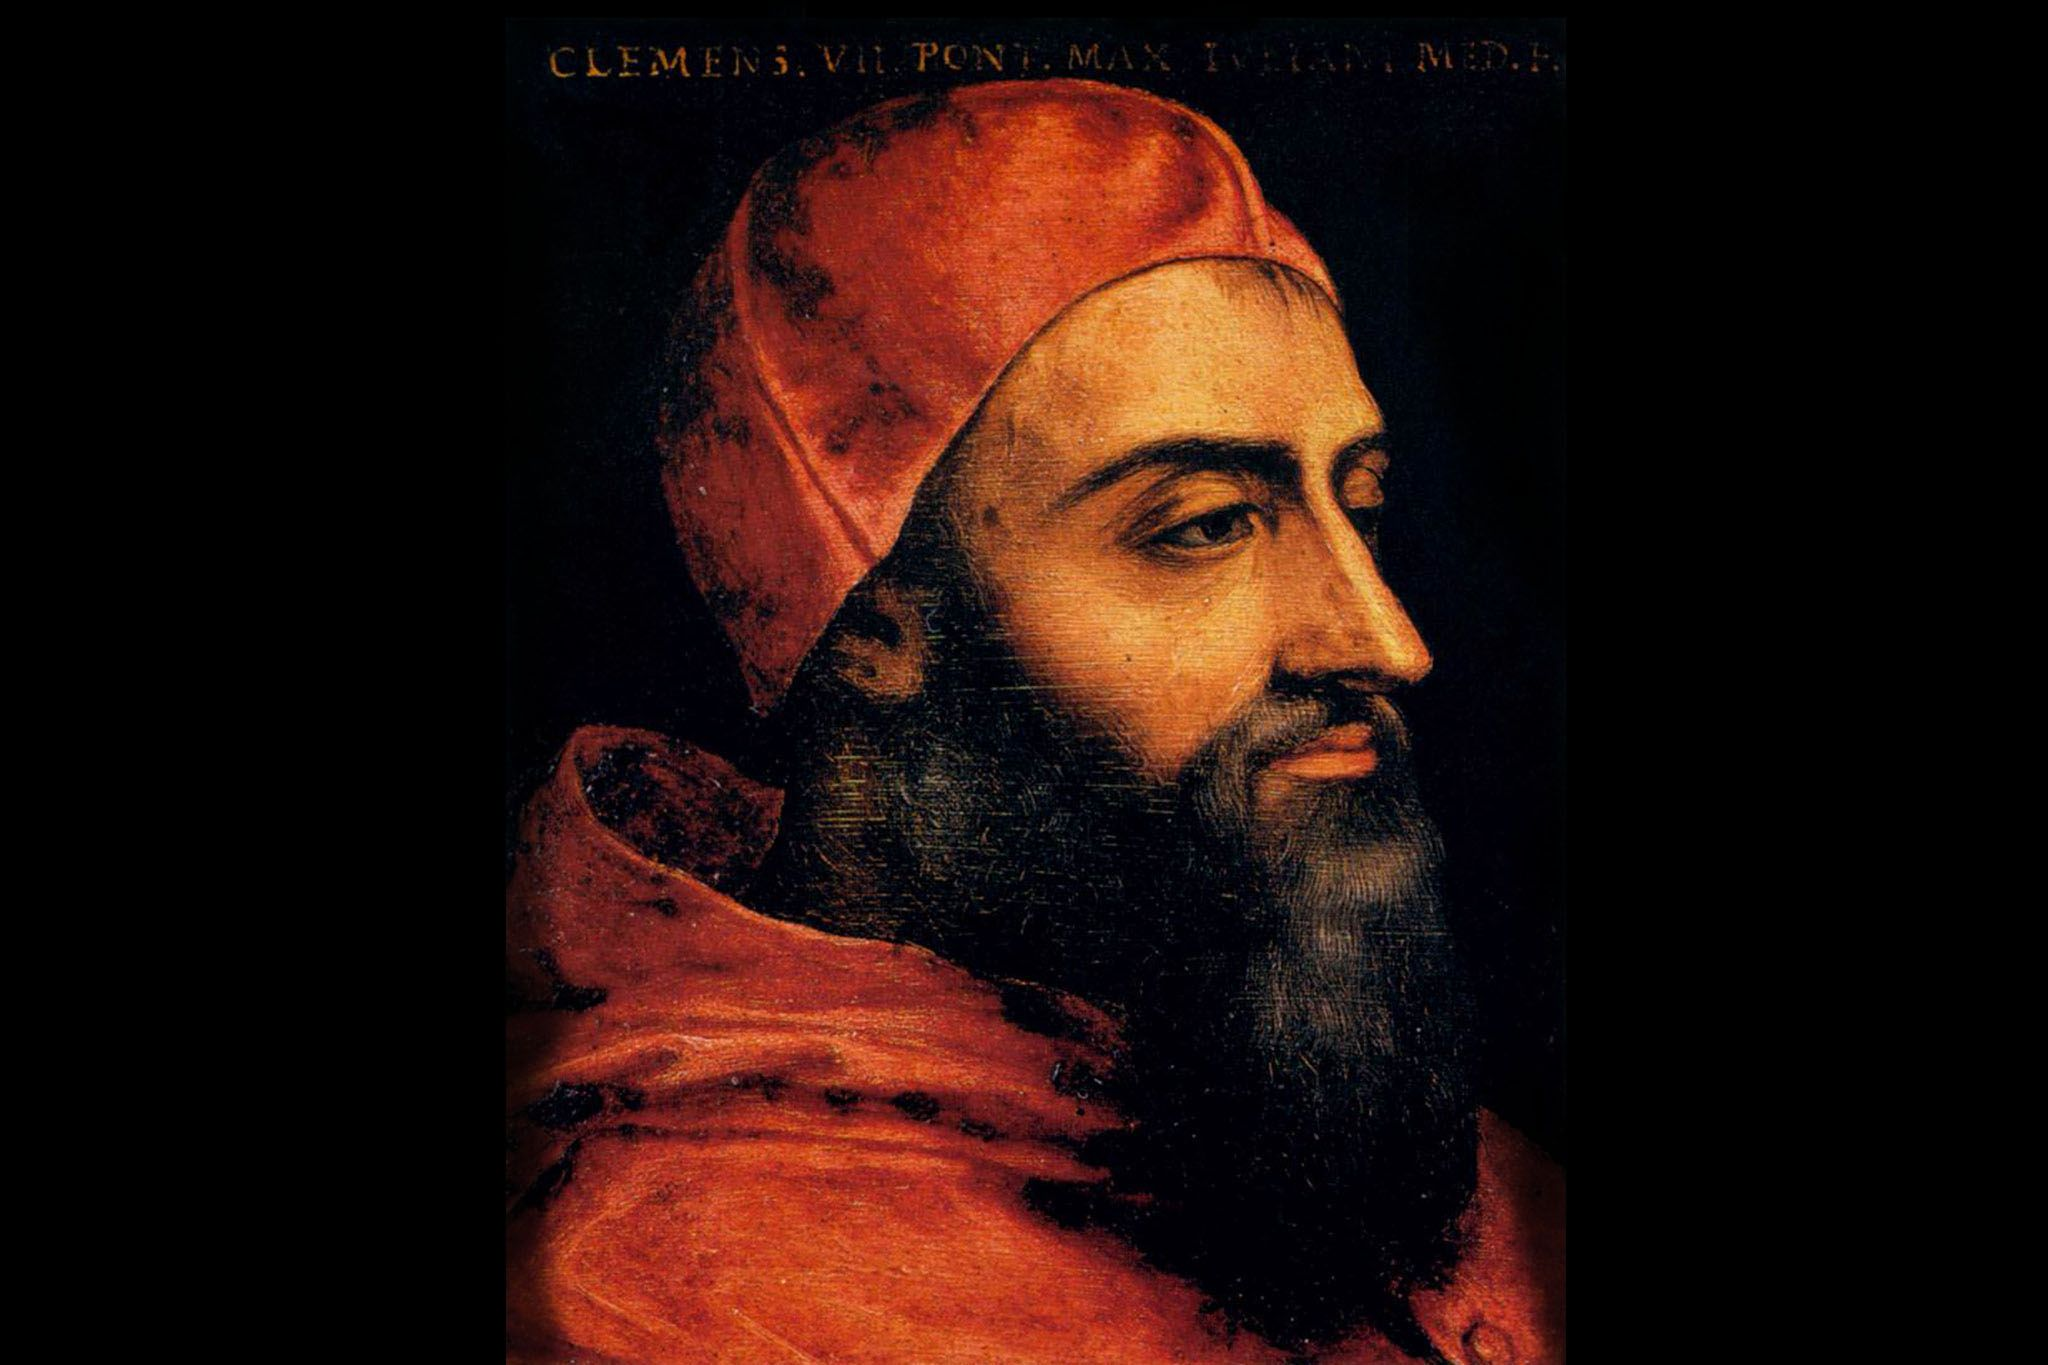 Clement VII, christened Giulio de' Medici, was born May 26, 1478 in Florence and died in Rome, Sept. 25, 1534.